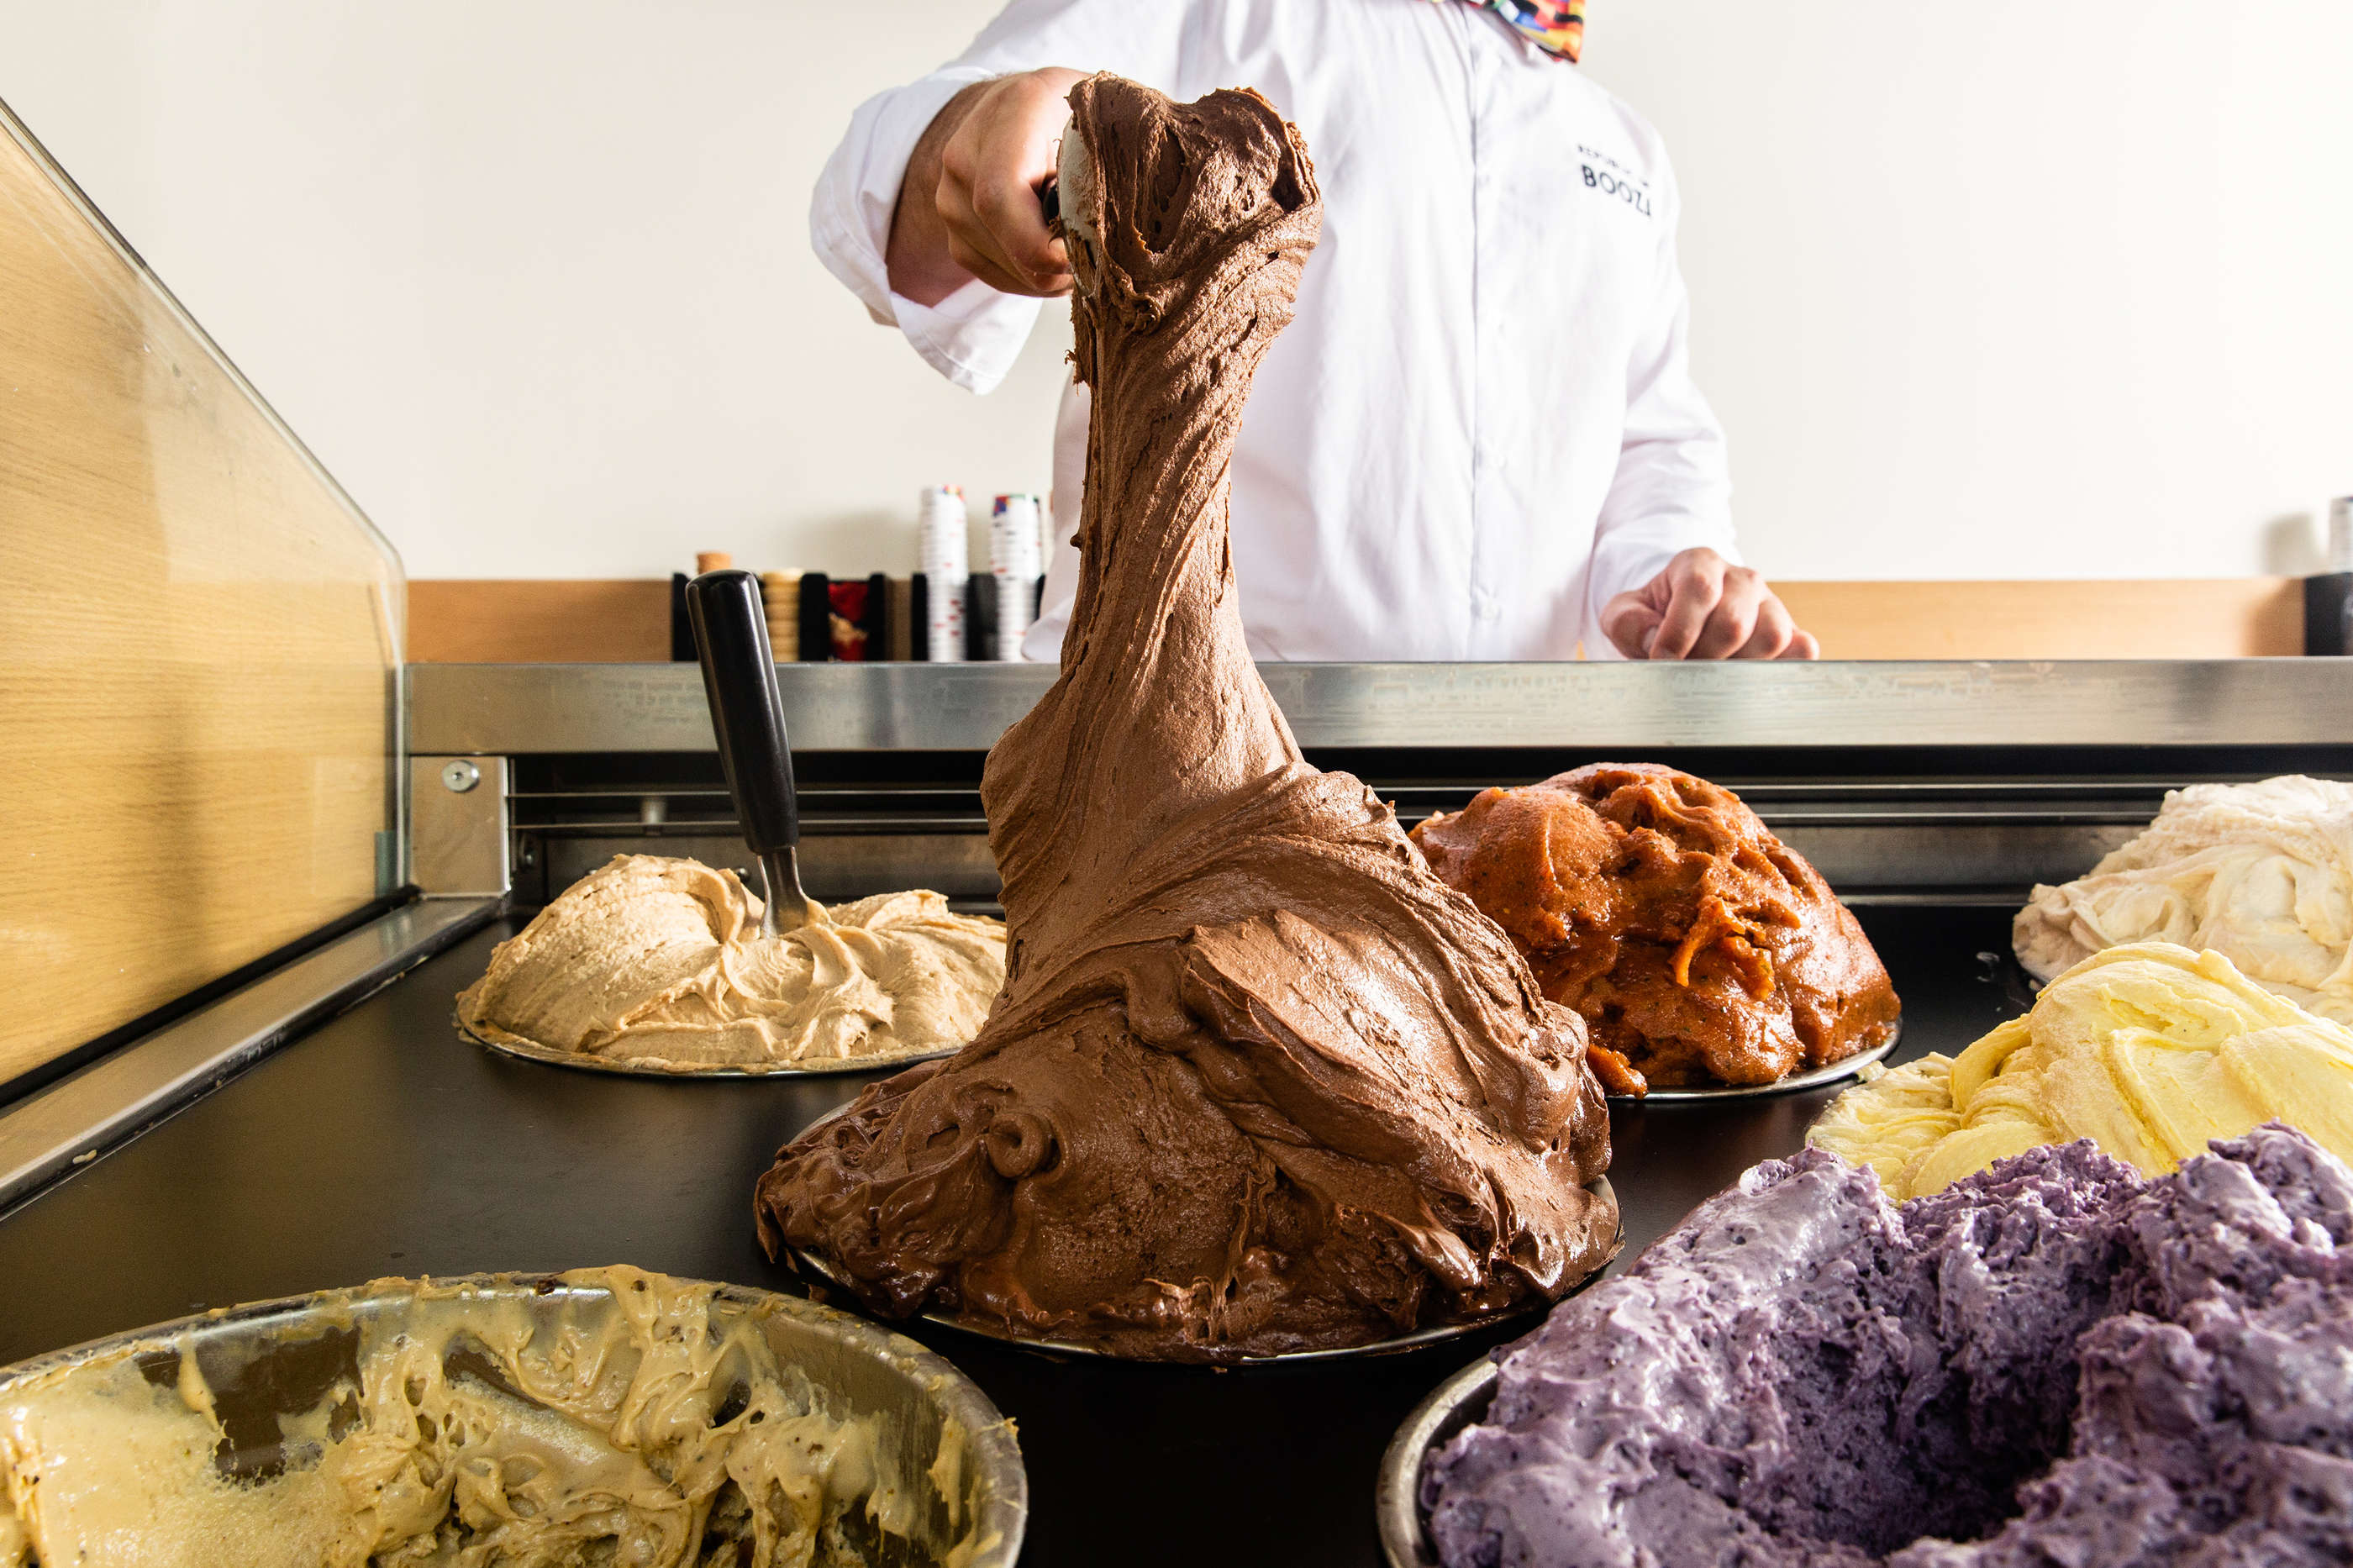 Republic Of Booza's Stretchy Ice Cream Is Made Using A 500-Year-Old Technique